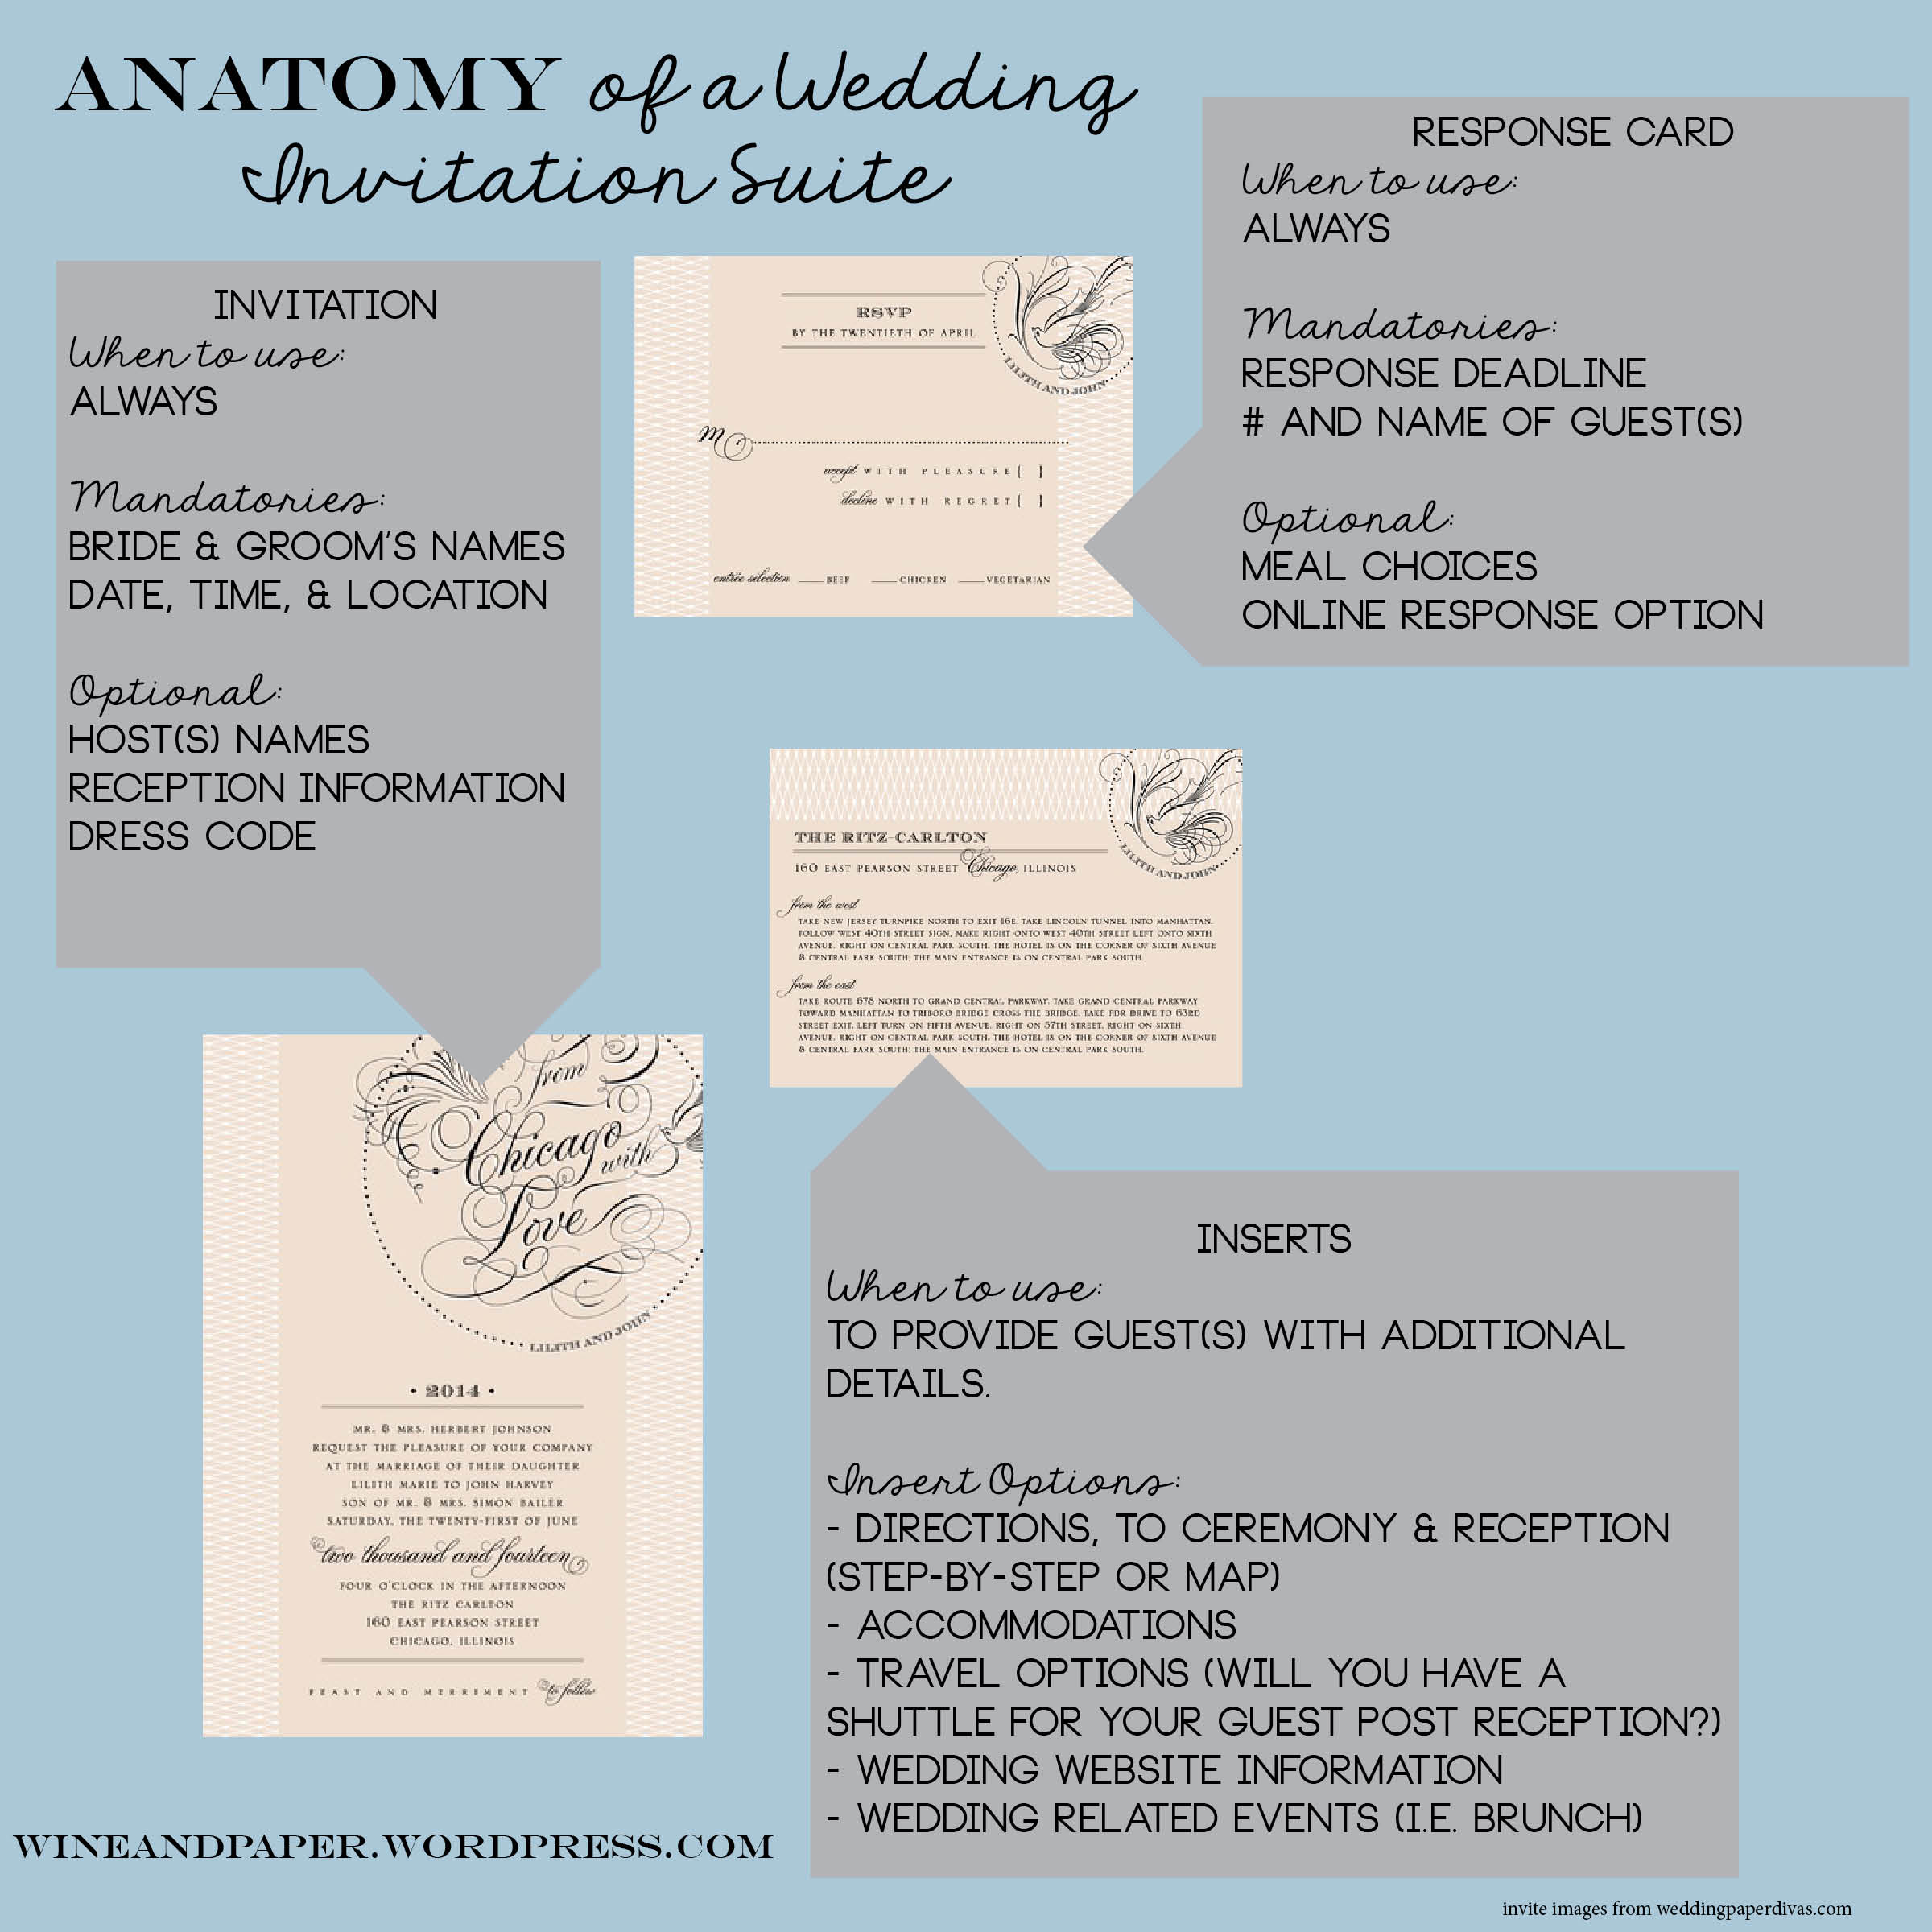 The anatomy of a wedding invitation suite wine paper for Wedding invitation suite what to include